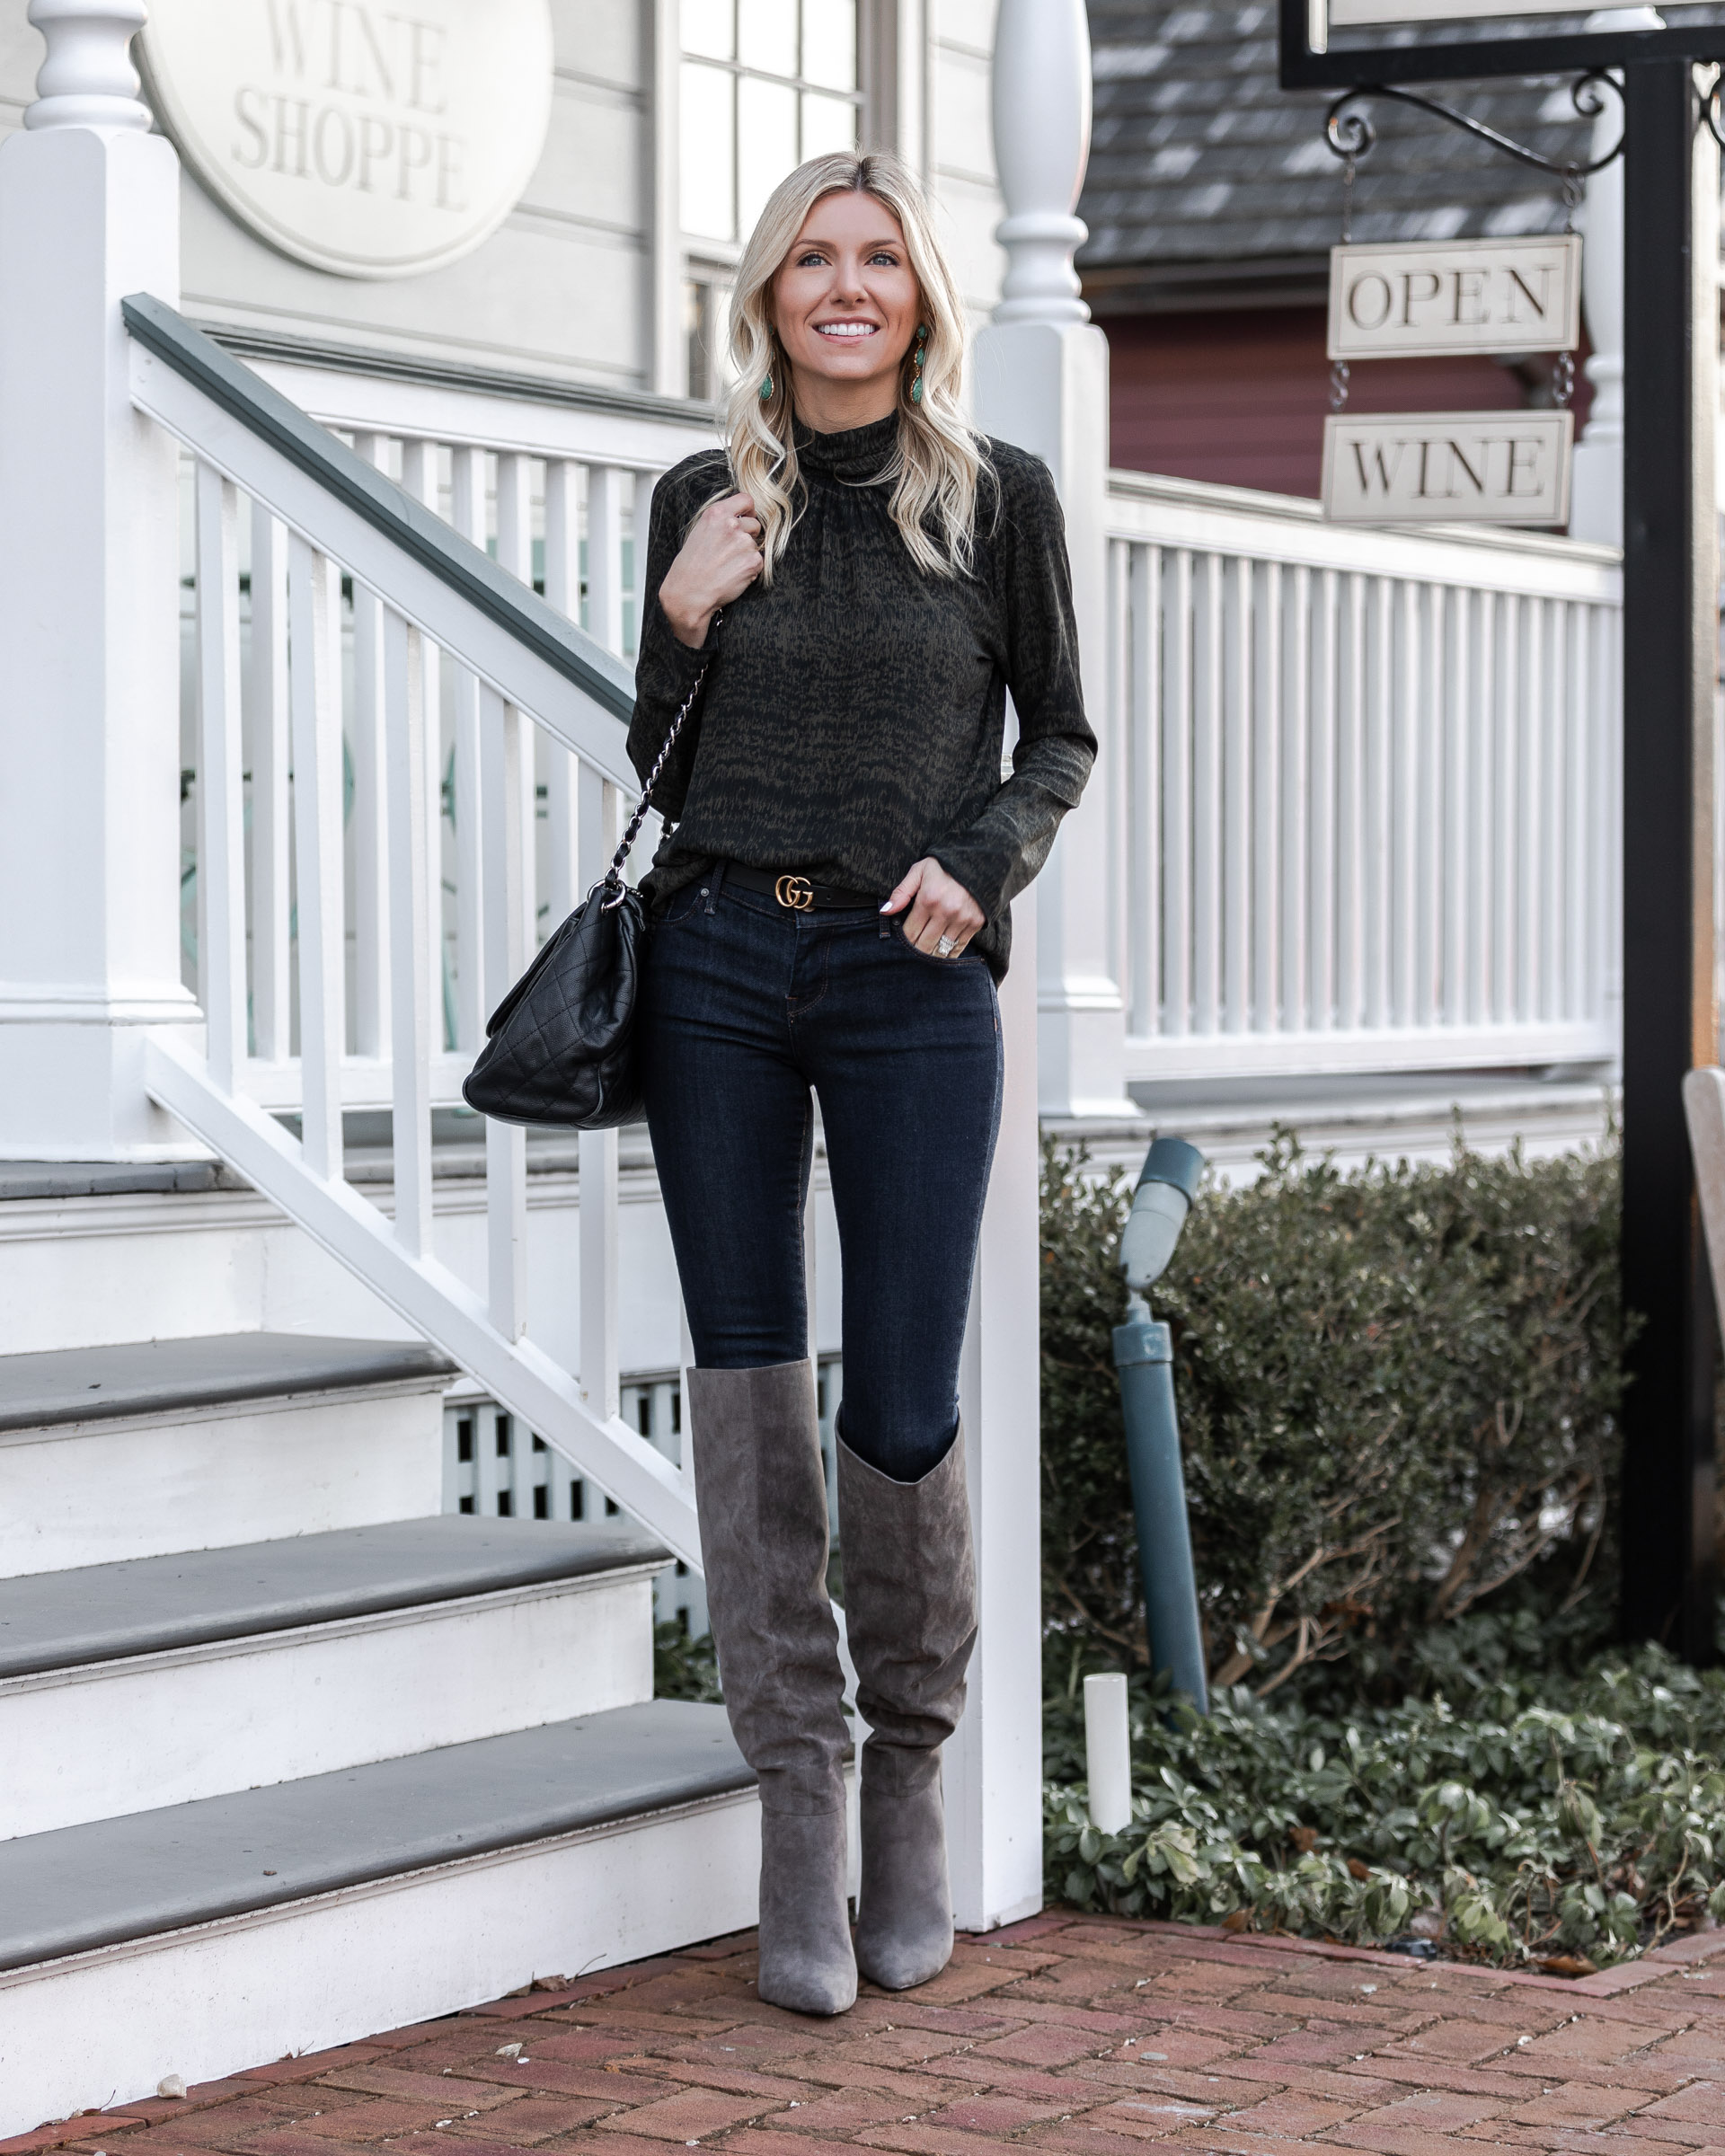 slouchy-over-the-knee-boots-the-glamorous-gal